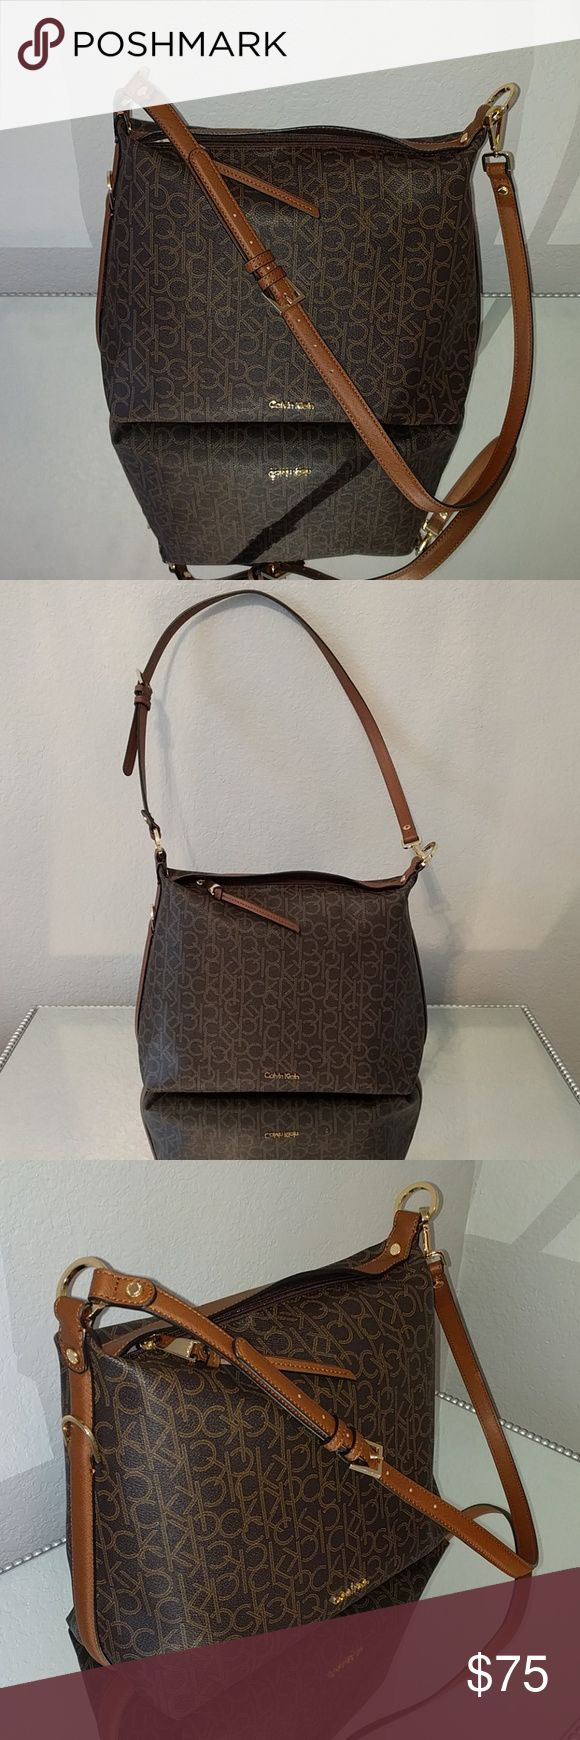 Calvin Klein Bag Brand New No Tags But Never Used Leather Calvin Klein Bag Adjustable Strap Medium Sized Bag Perfect As A Purse Or Use As A Weekender Bag For Travel Calvin Klein Bags